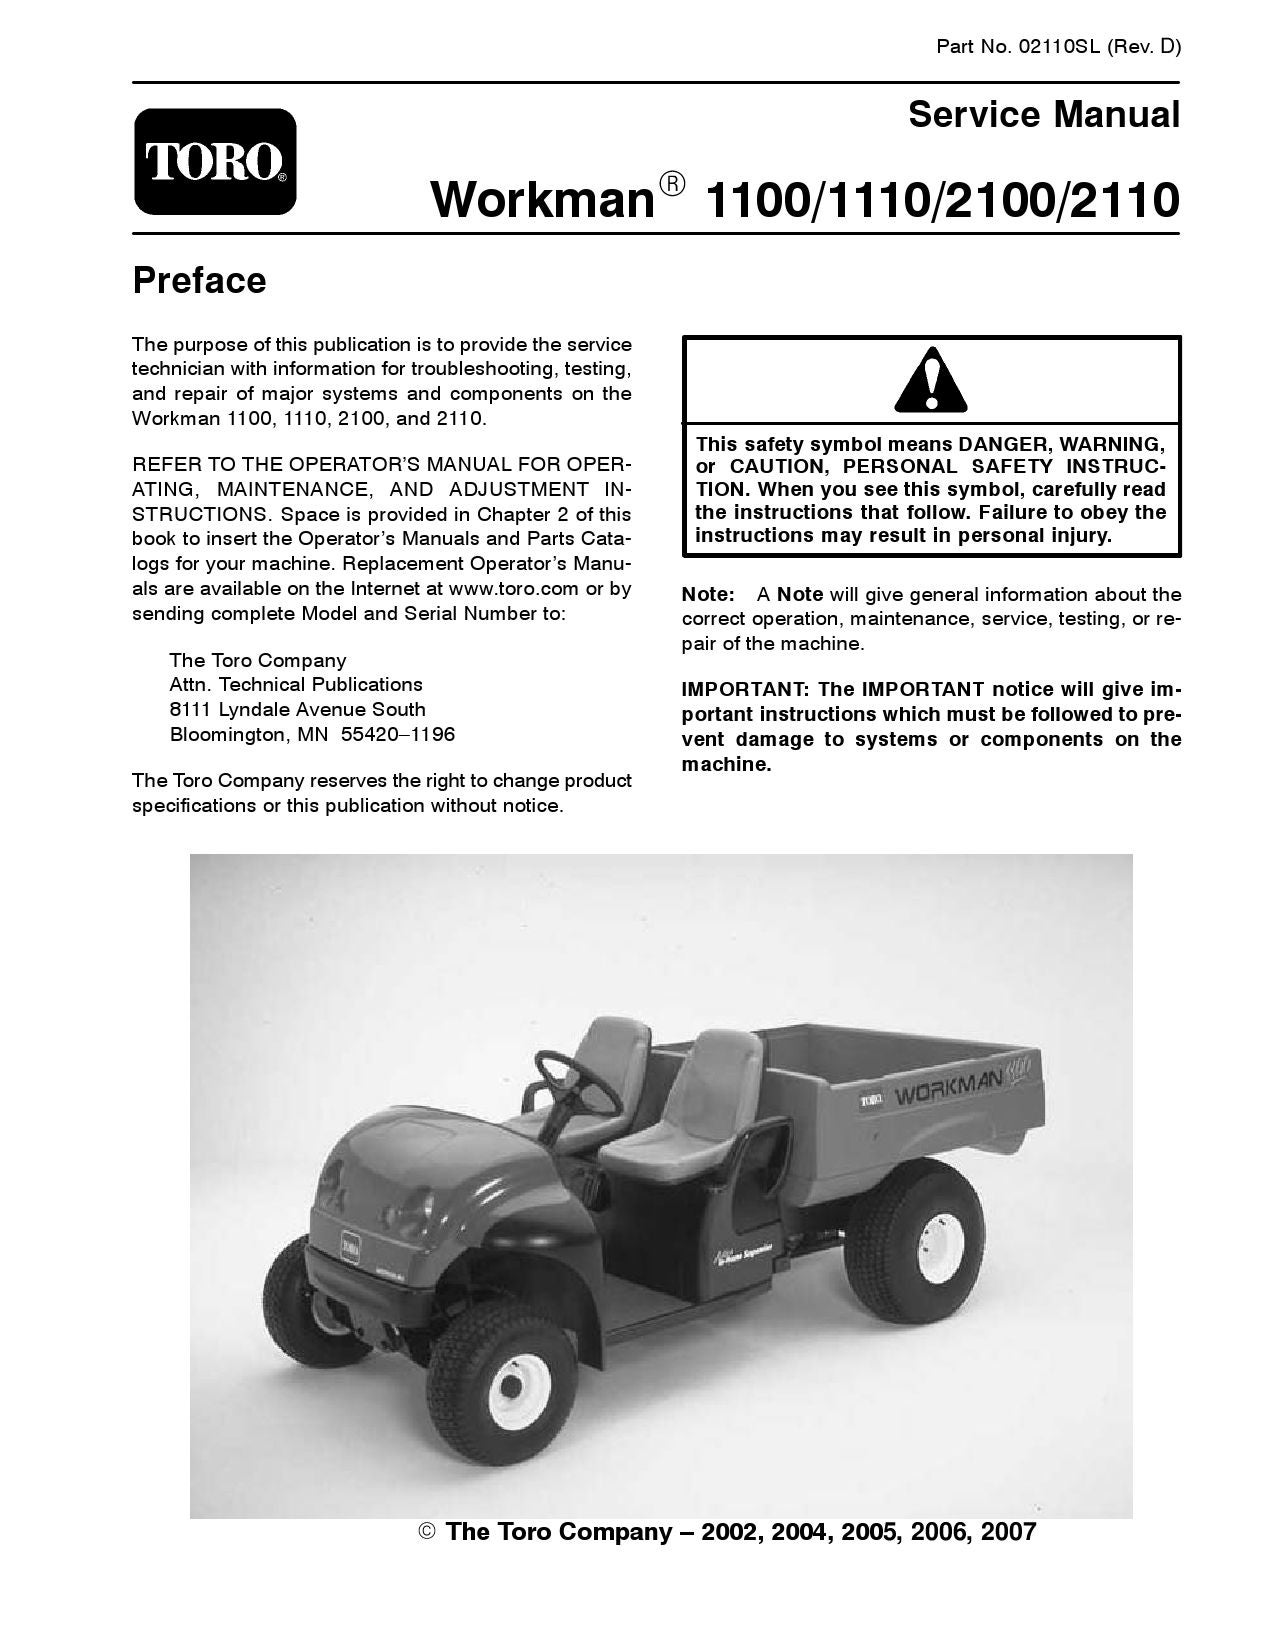 02110slpdf Workman 1100 1110 2100 2110 Rev D Aug 2007 By Wiring Diagram For Toro Blower Negimachi Issuu